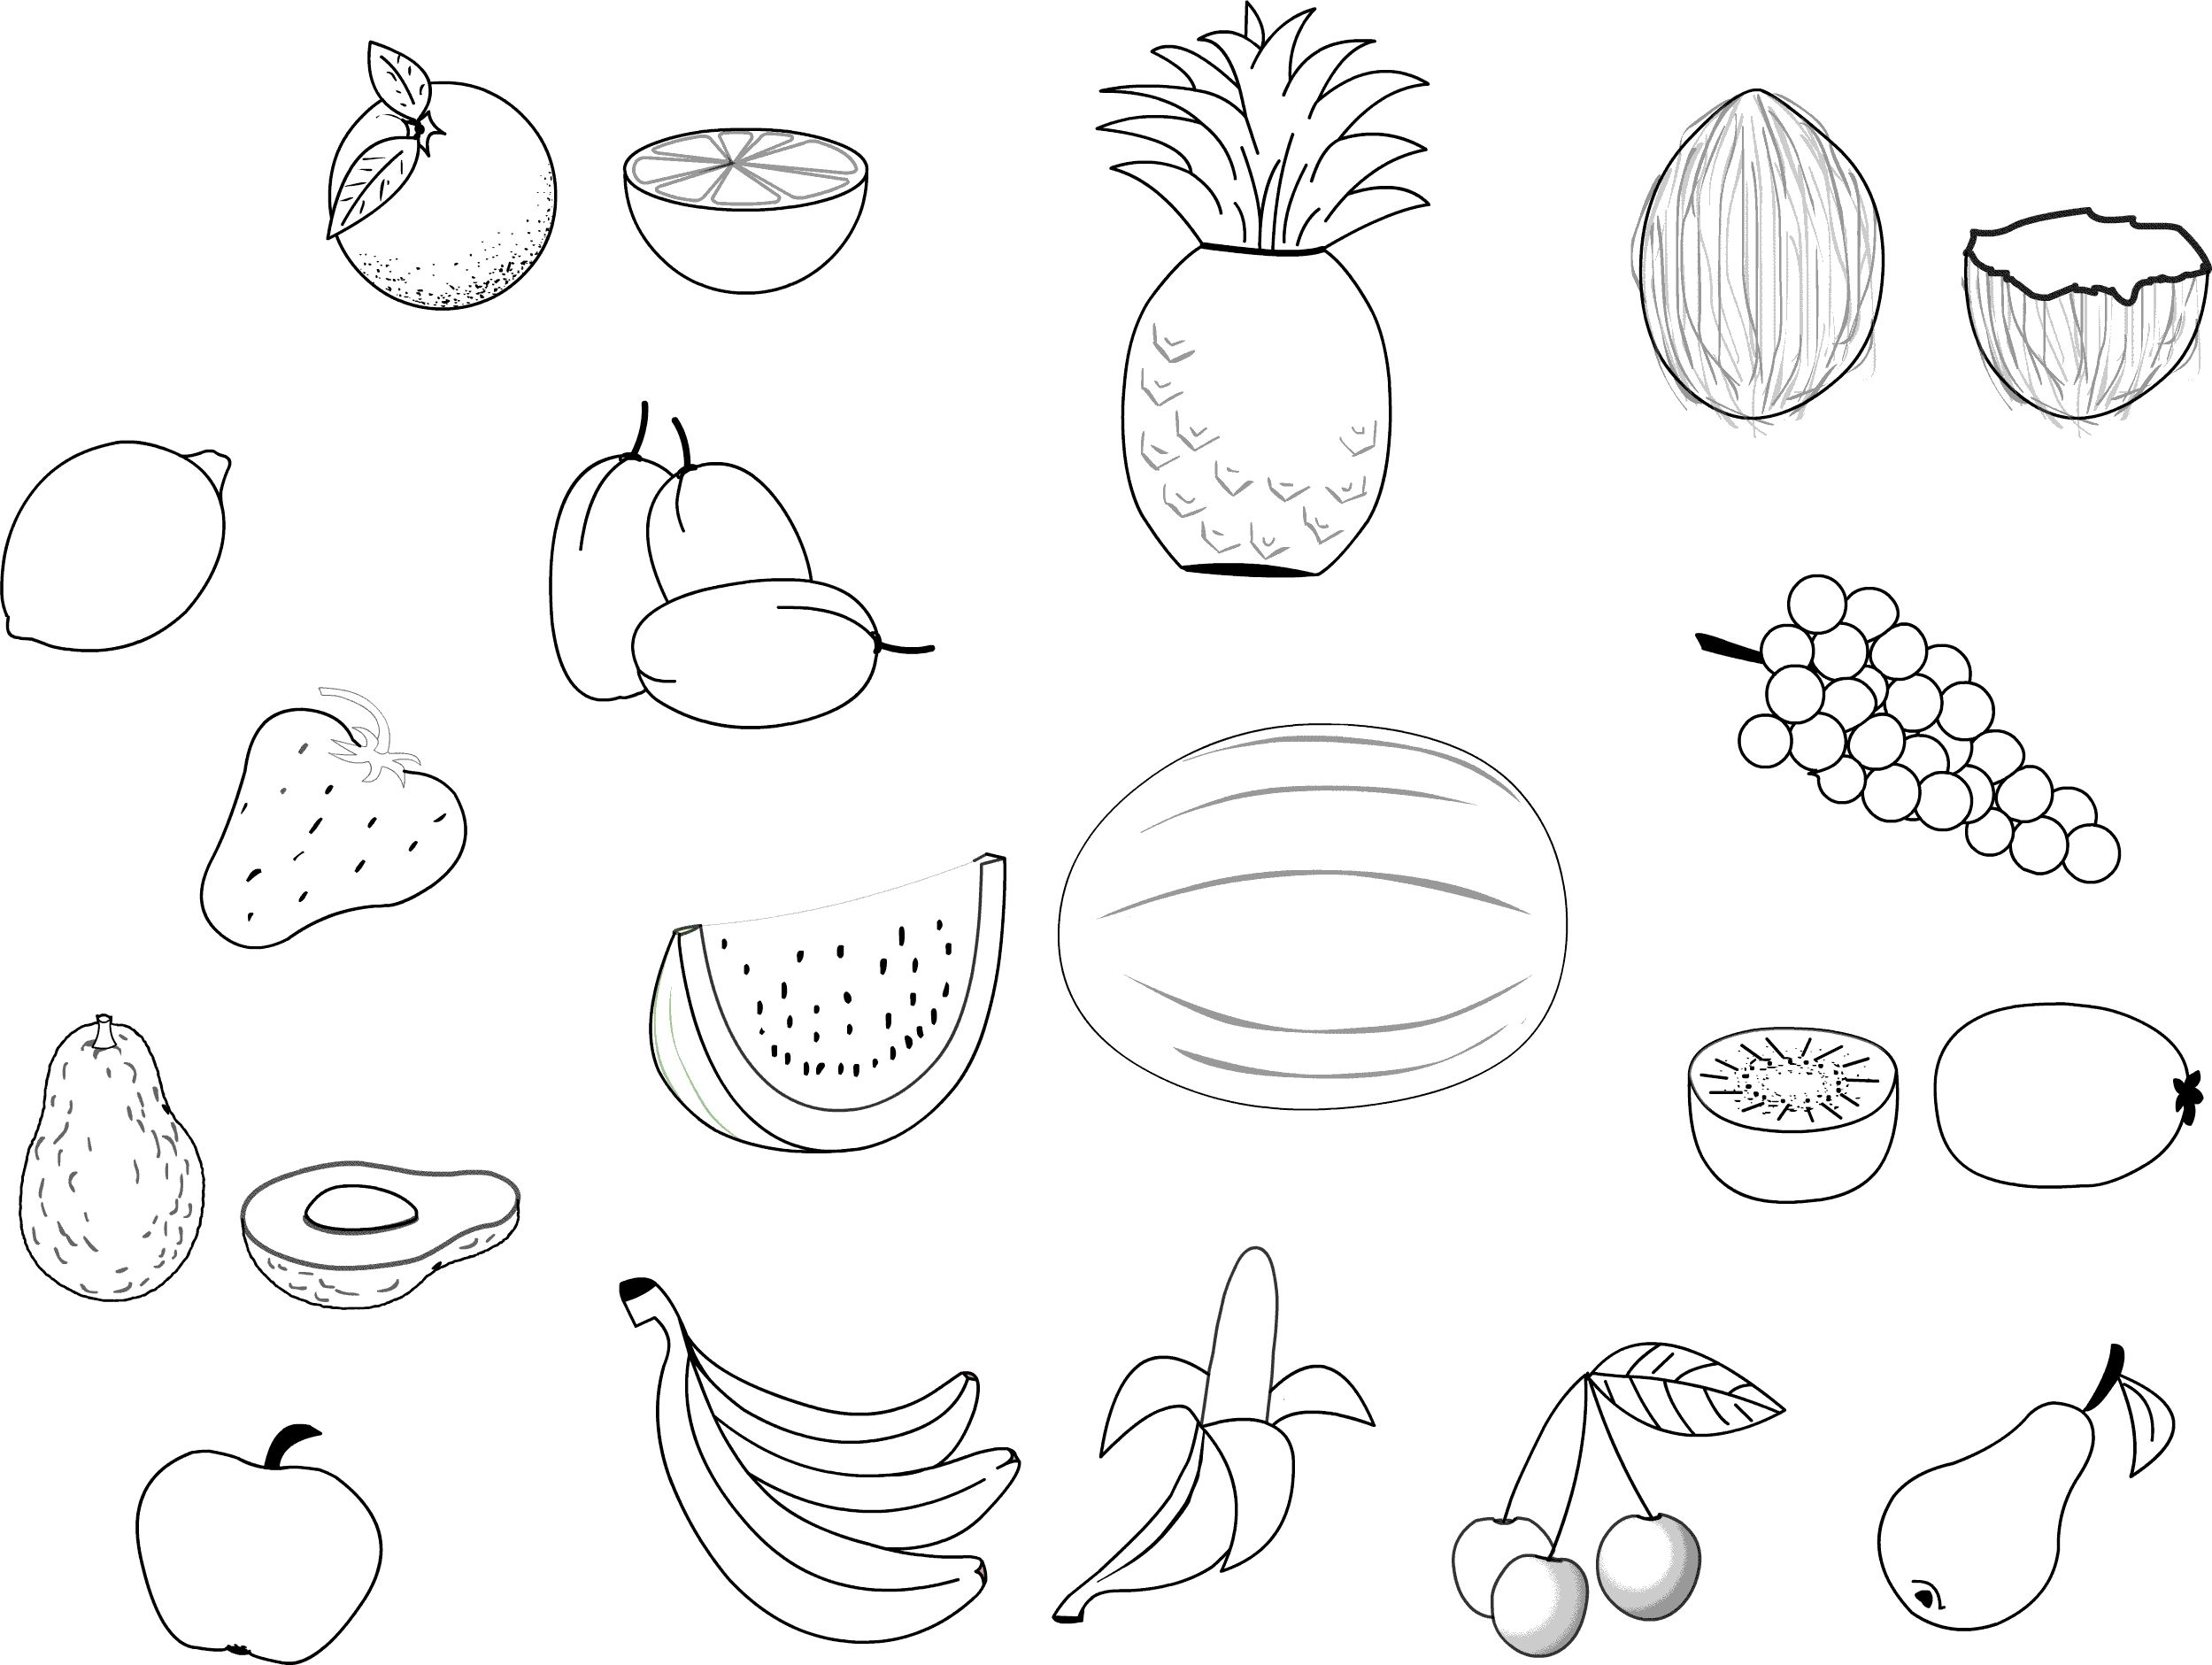 Fruits And Vegetables Coloring Pages Free Printable Fruit Coloring Pages For Kids Albanysinsanity Com Malvorlagen Zum Ausdrucken Kostenlose Ausmalbilder Kinderfarben